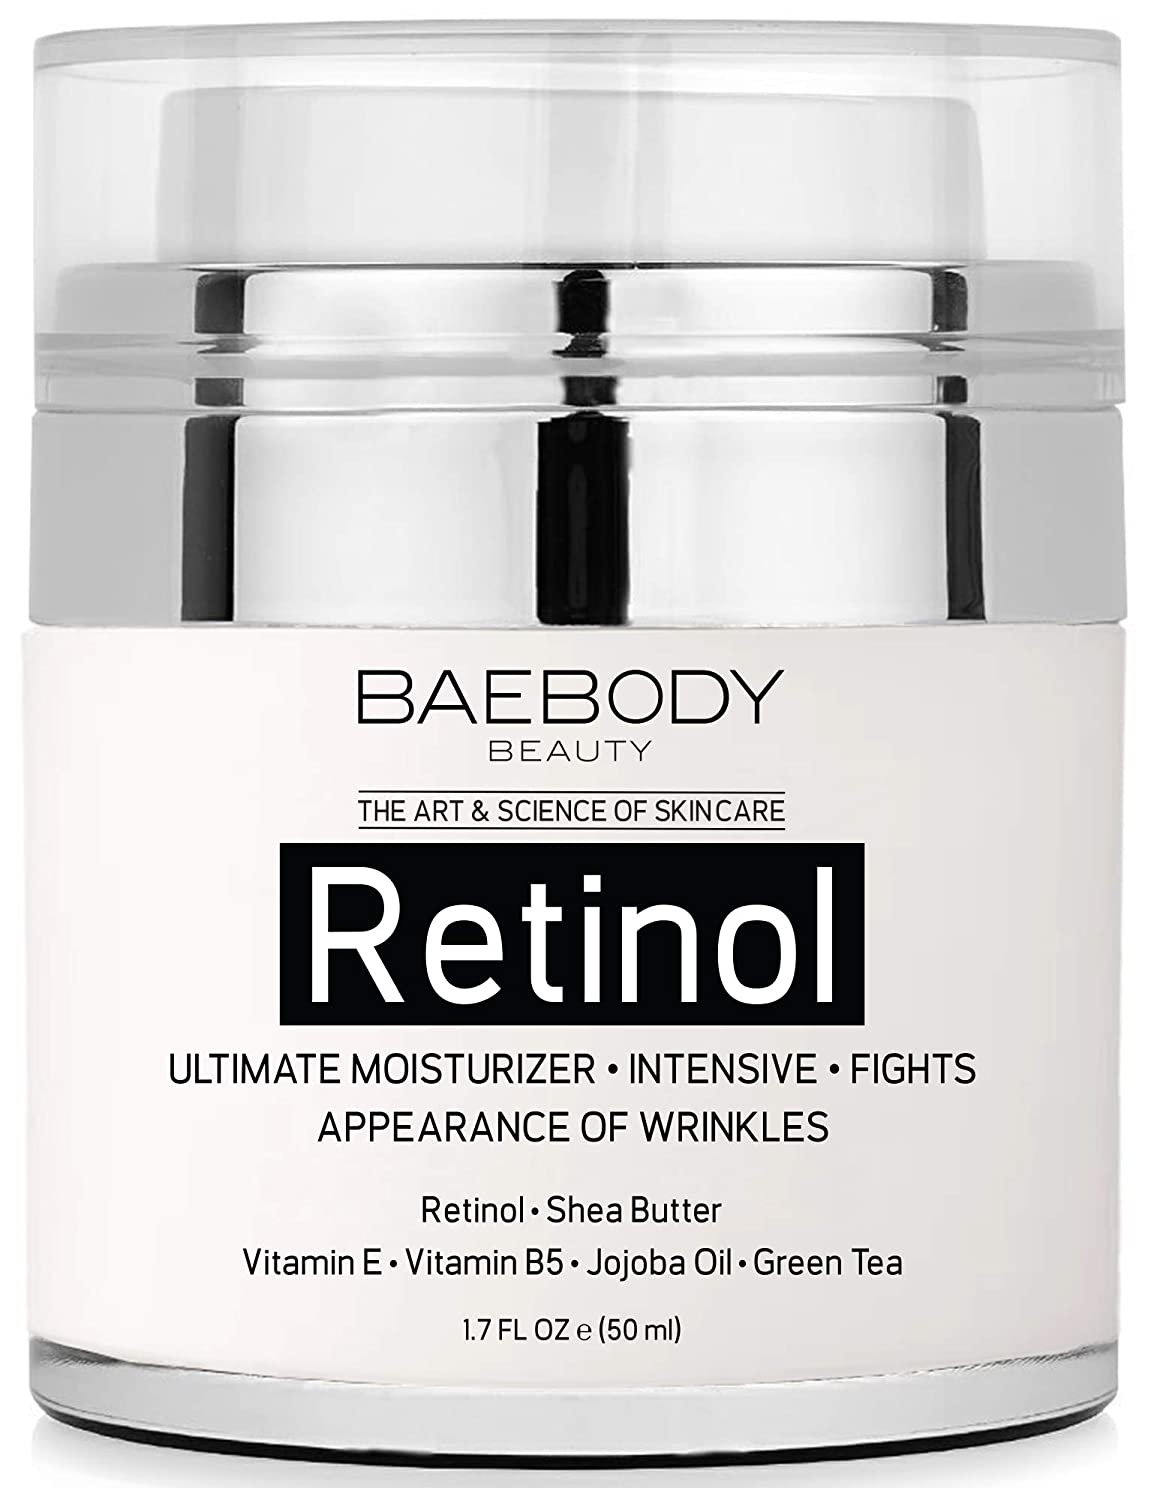 Baebody Retinol Moisturizer Cream with Retinol Jojoba Oil  Vitamin E 17 Ounces